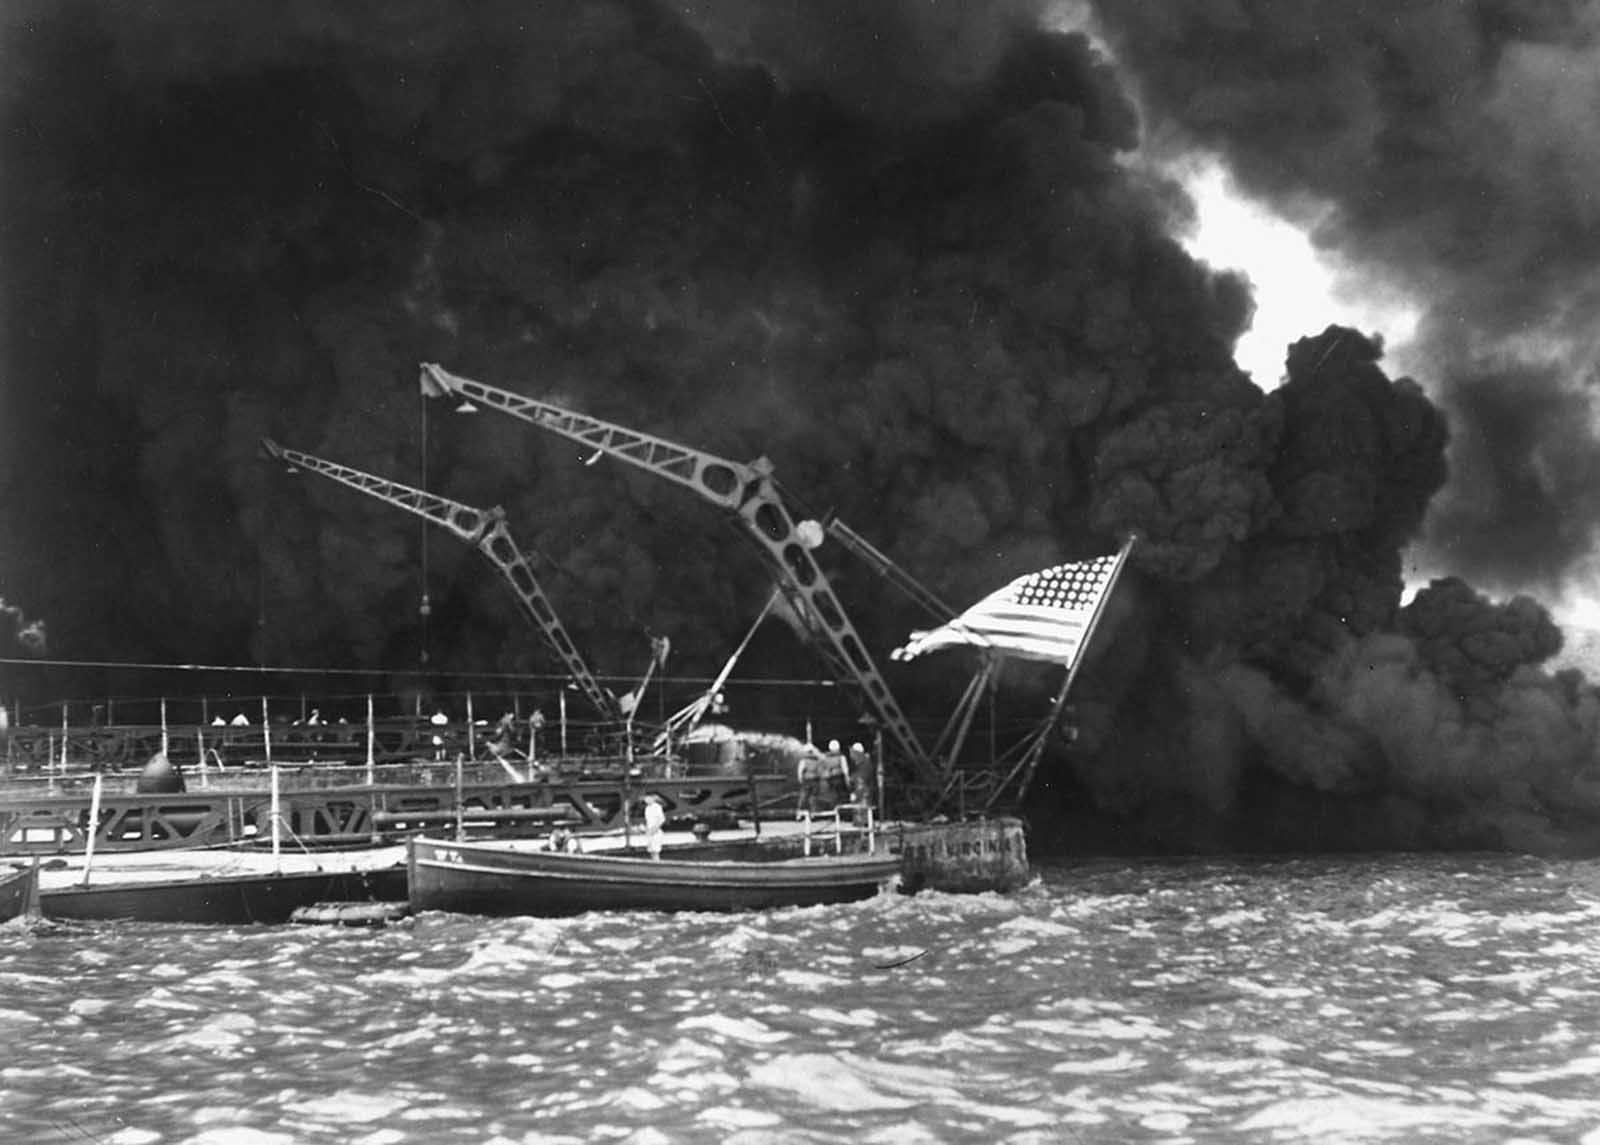 A U.S. flag flies from the stern of the sunken battleship USS West Virginia after the Japanese attack on Pearl Harbor, December 7, 1941.